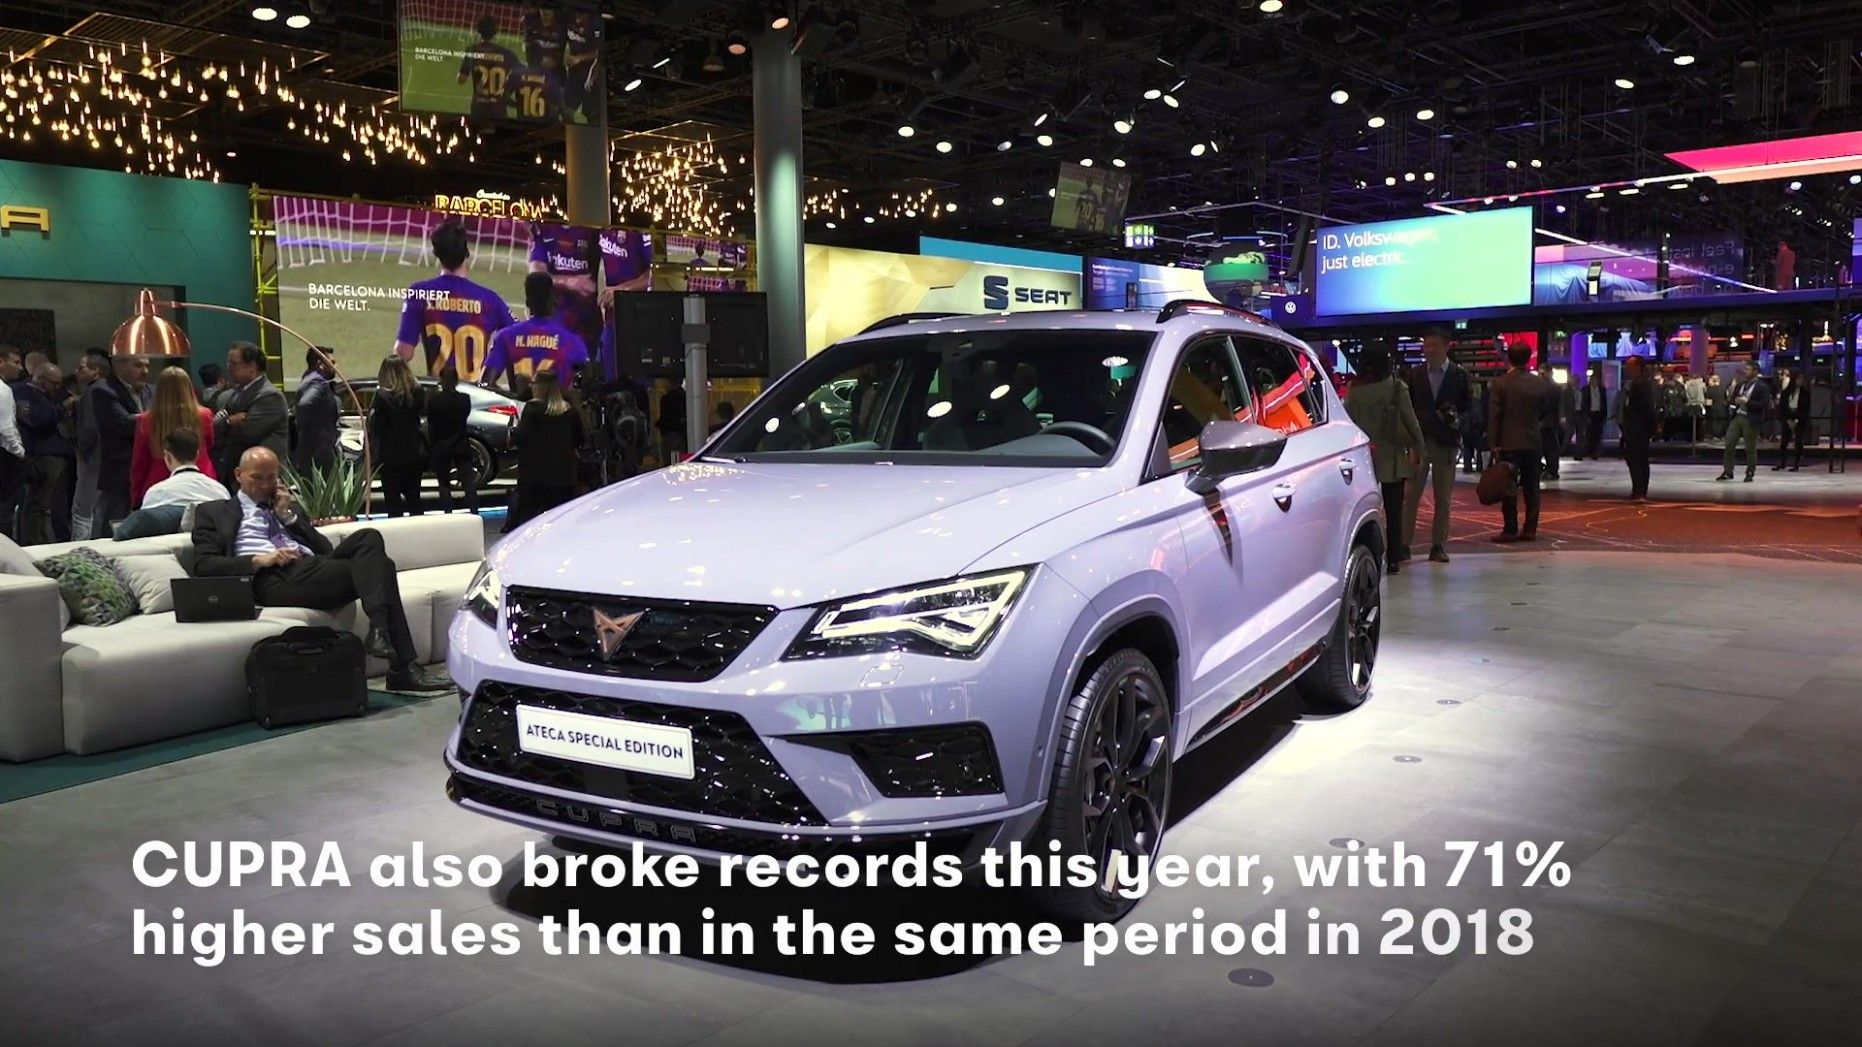 2021 New Seat Ibiza Egypt Mexico Price and Release date